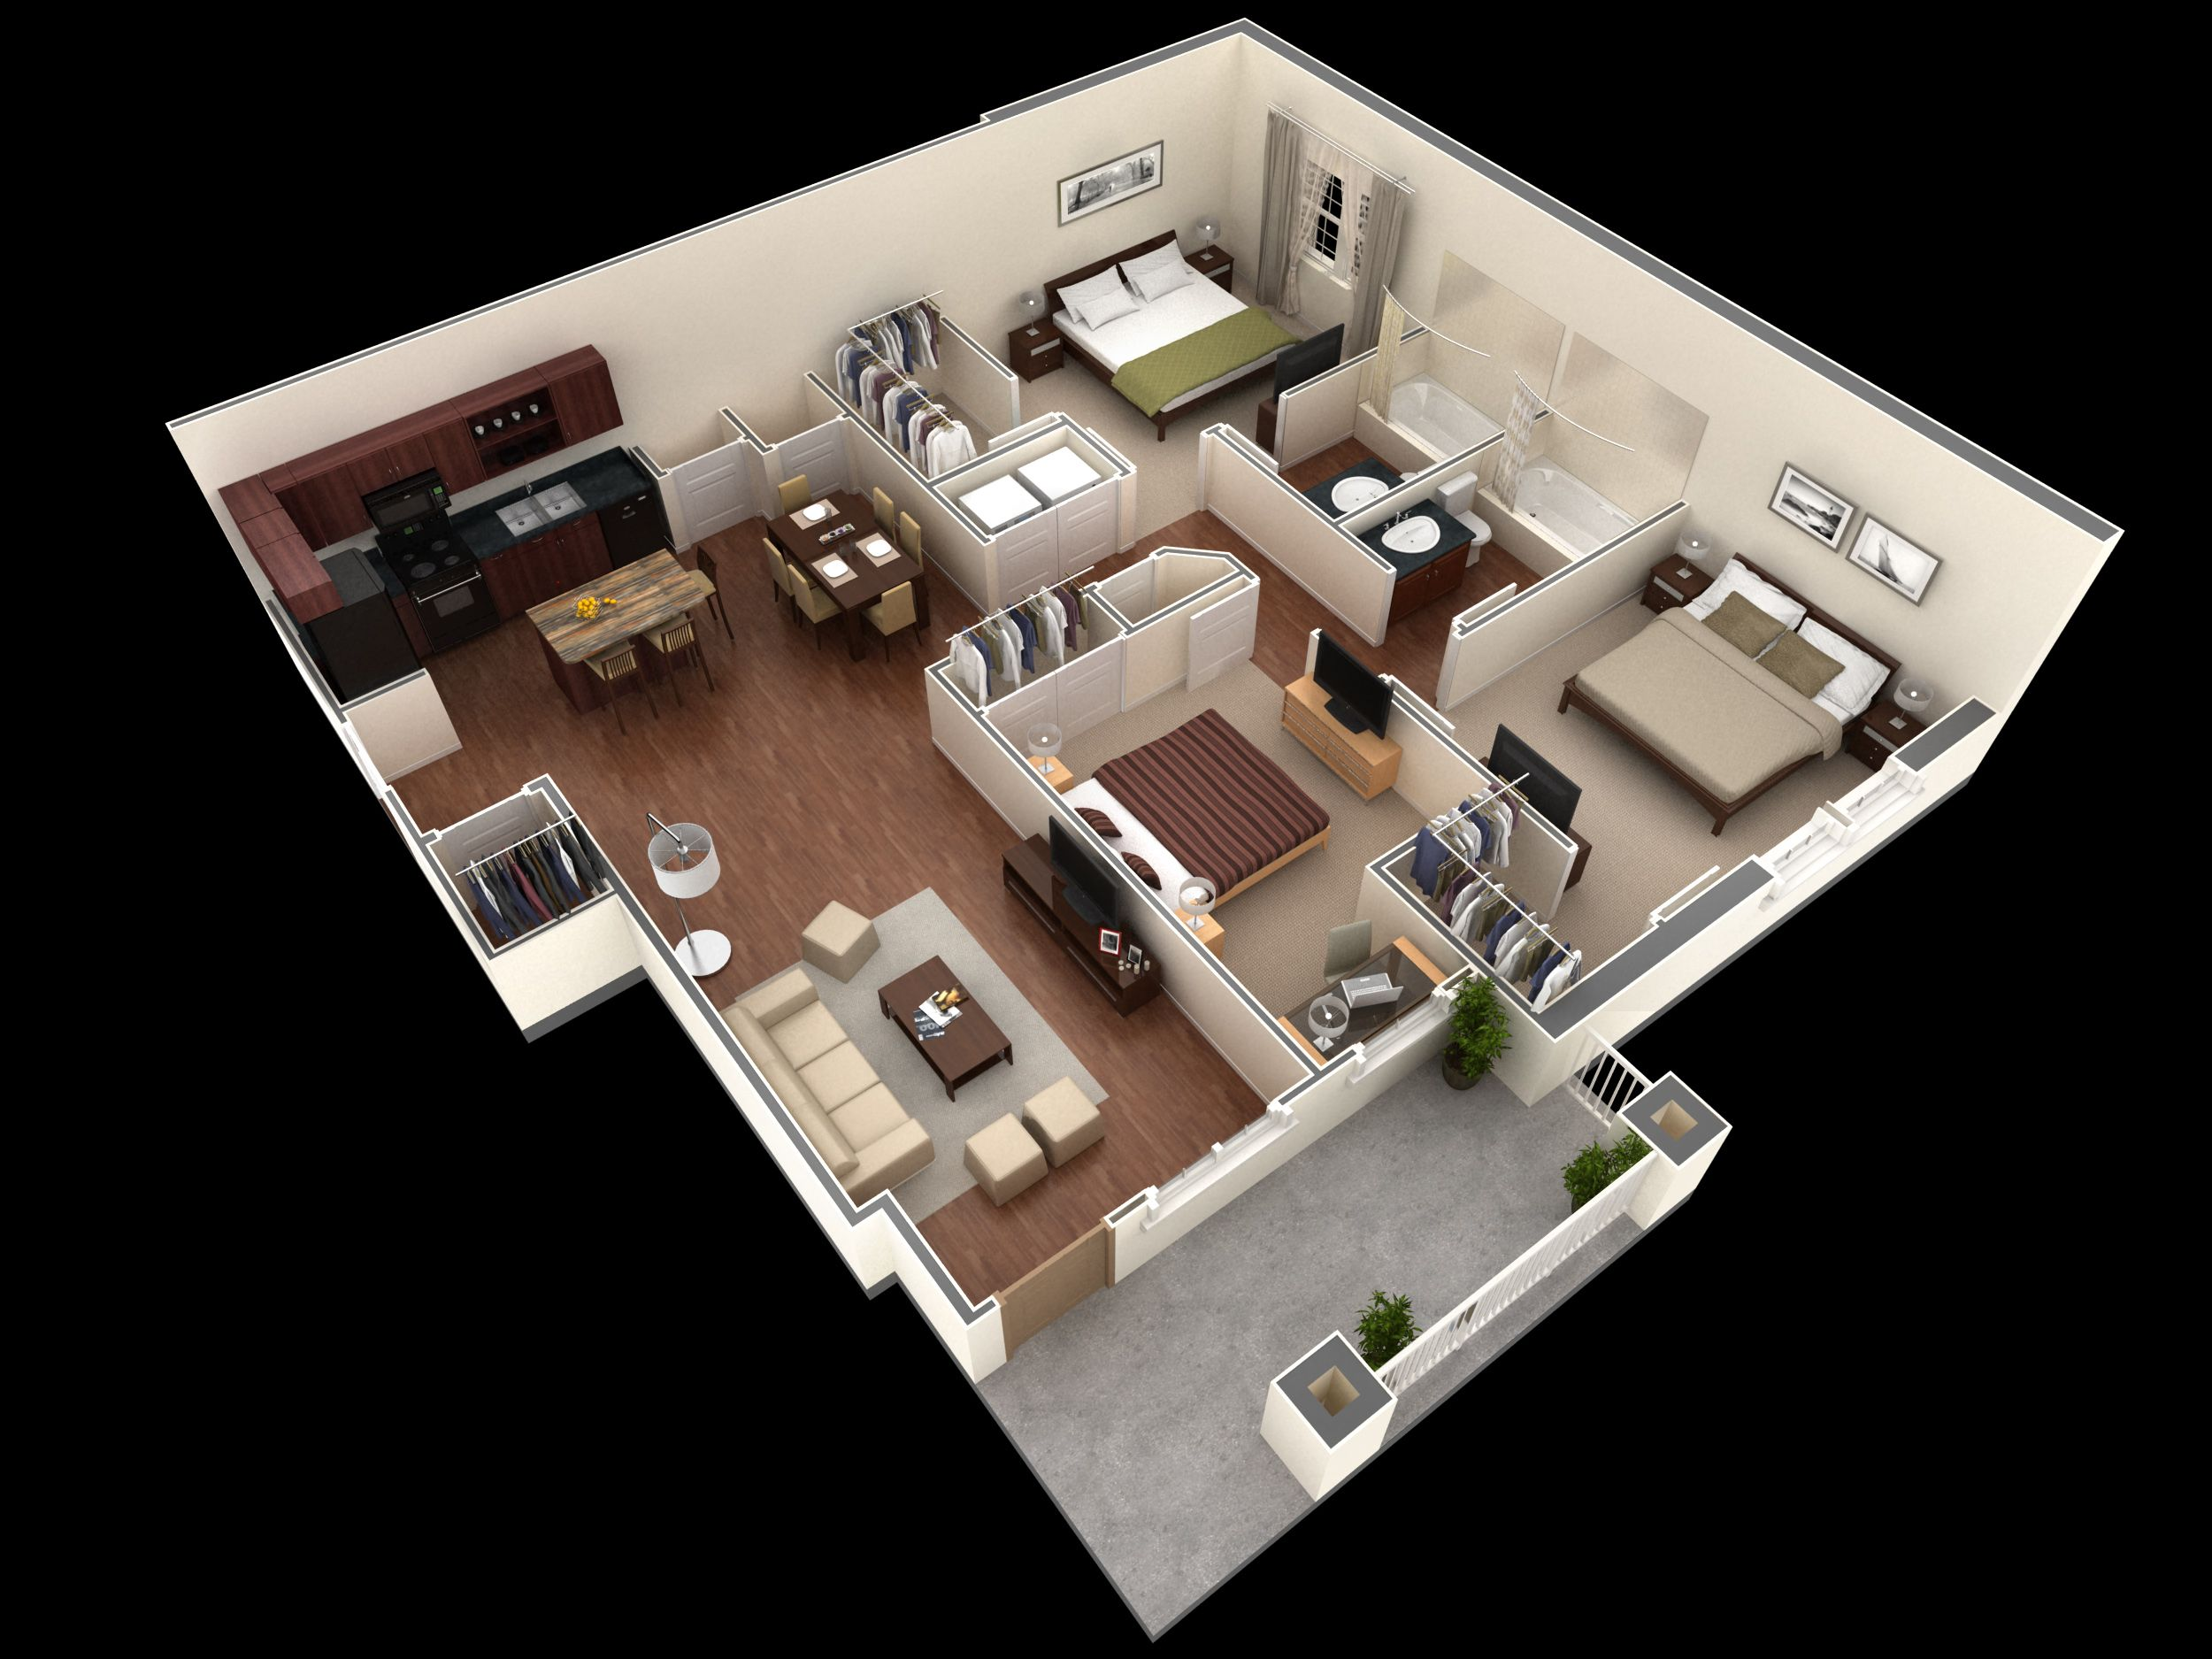 Springs At Greenville New Apartments In Greenville Sc Small House Design Floor Plans Apartment